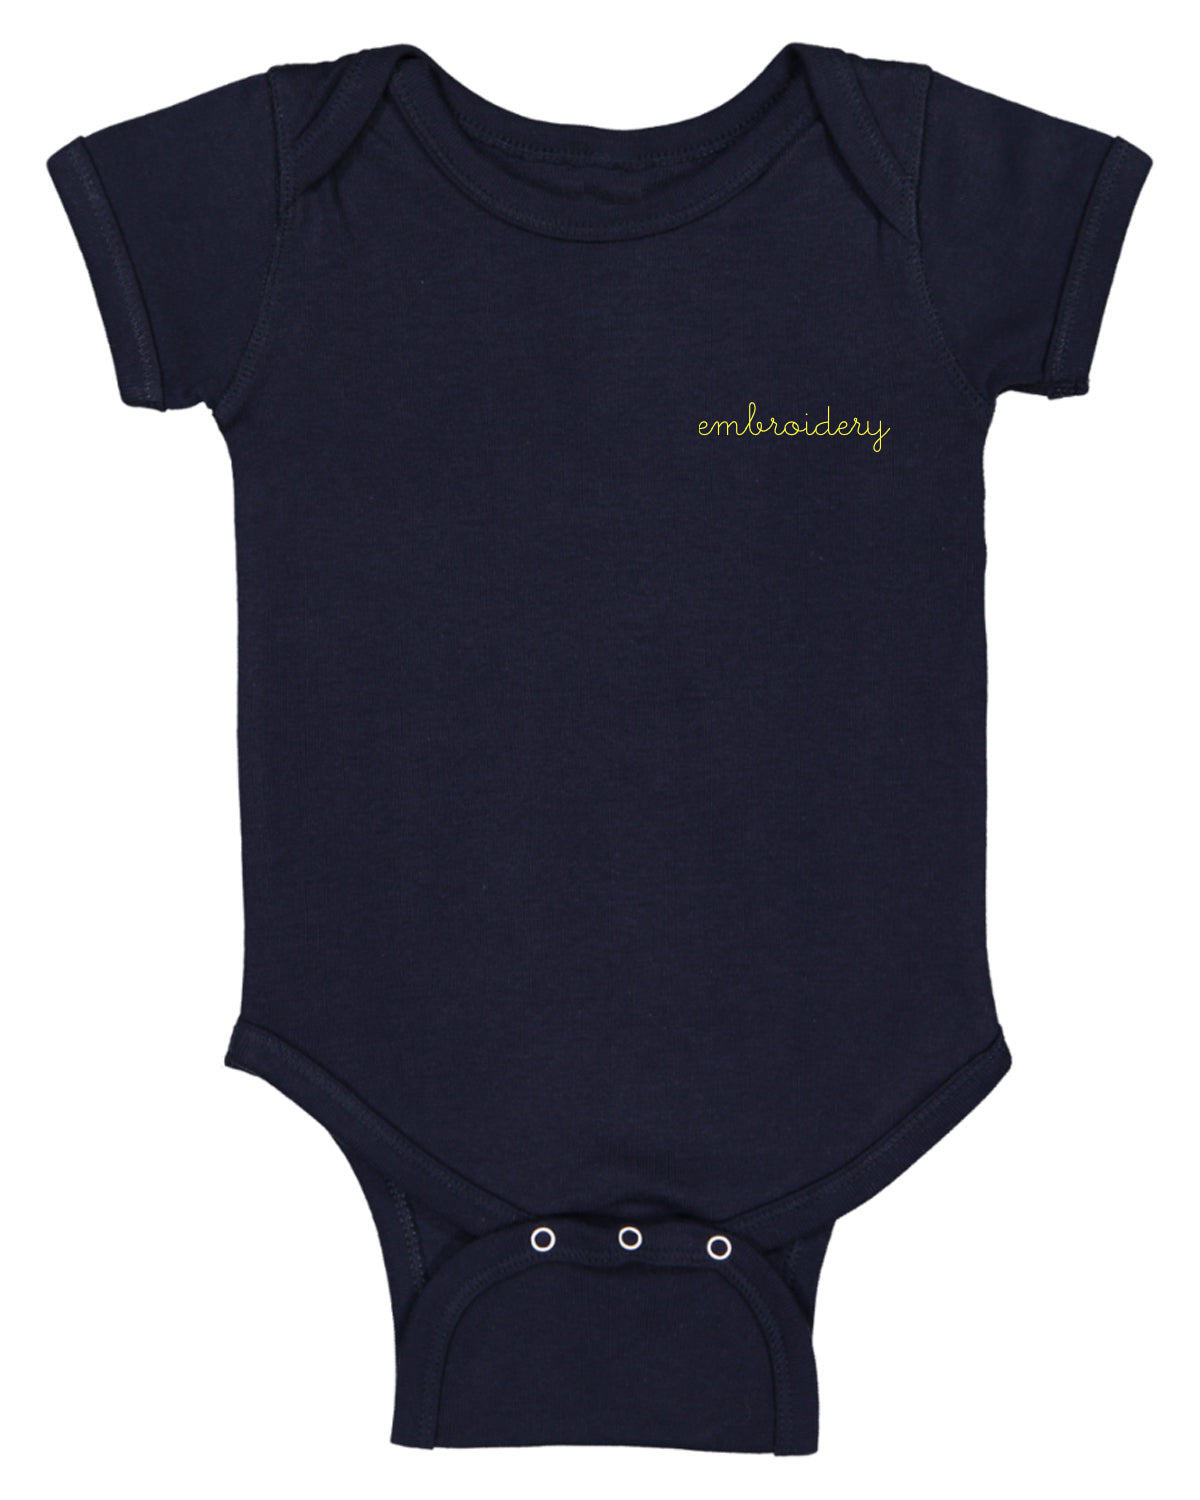 Baby Shortsleeve Onesie juju + stitch Newborn / Navy Stripe custom personalized script embroidered baby onesie bodysuit